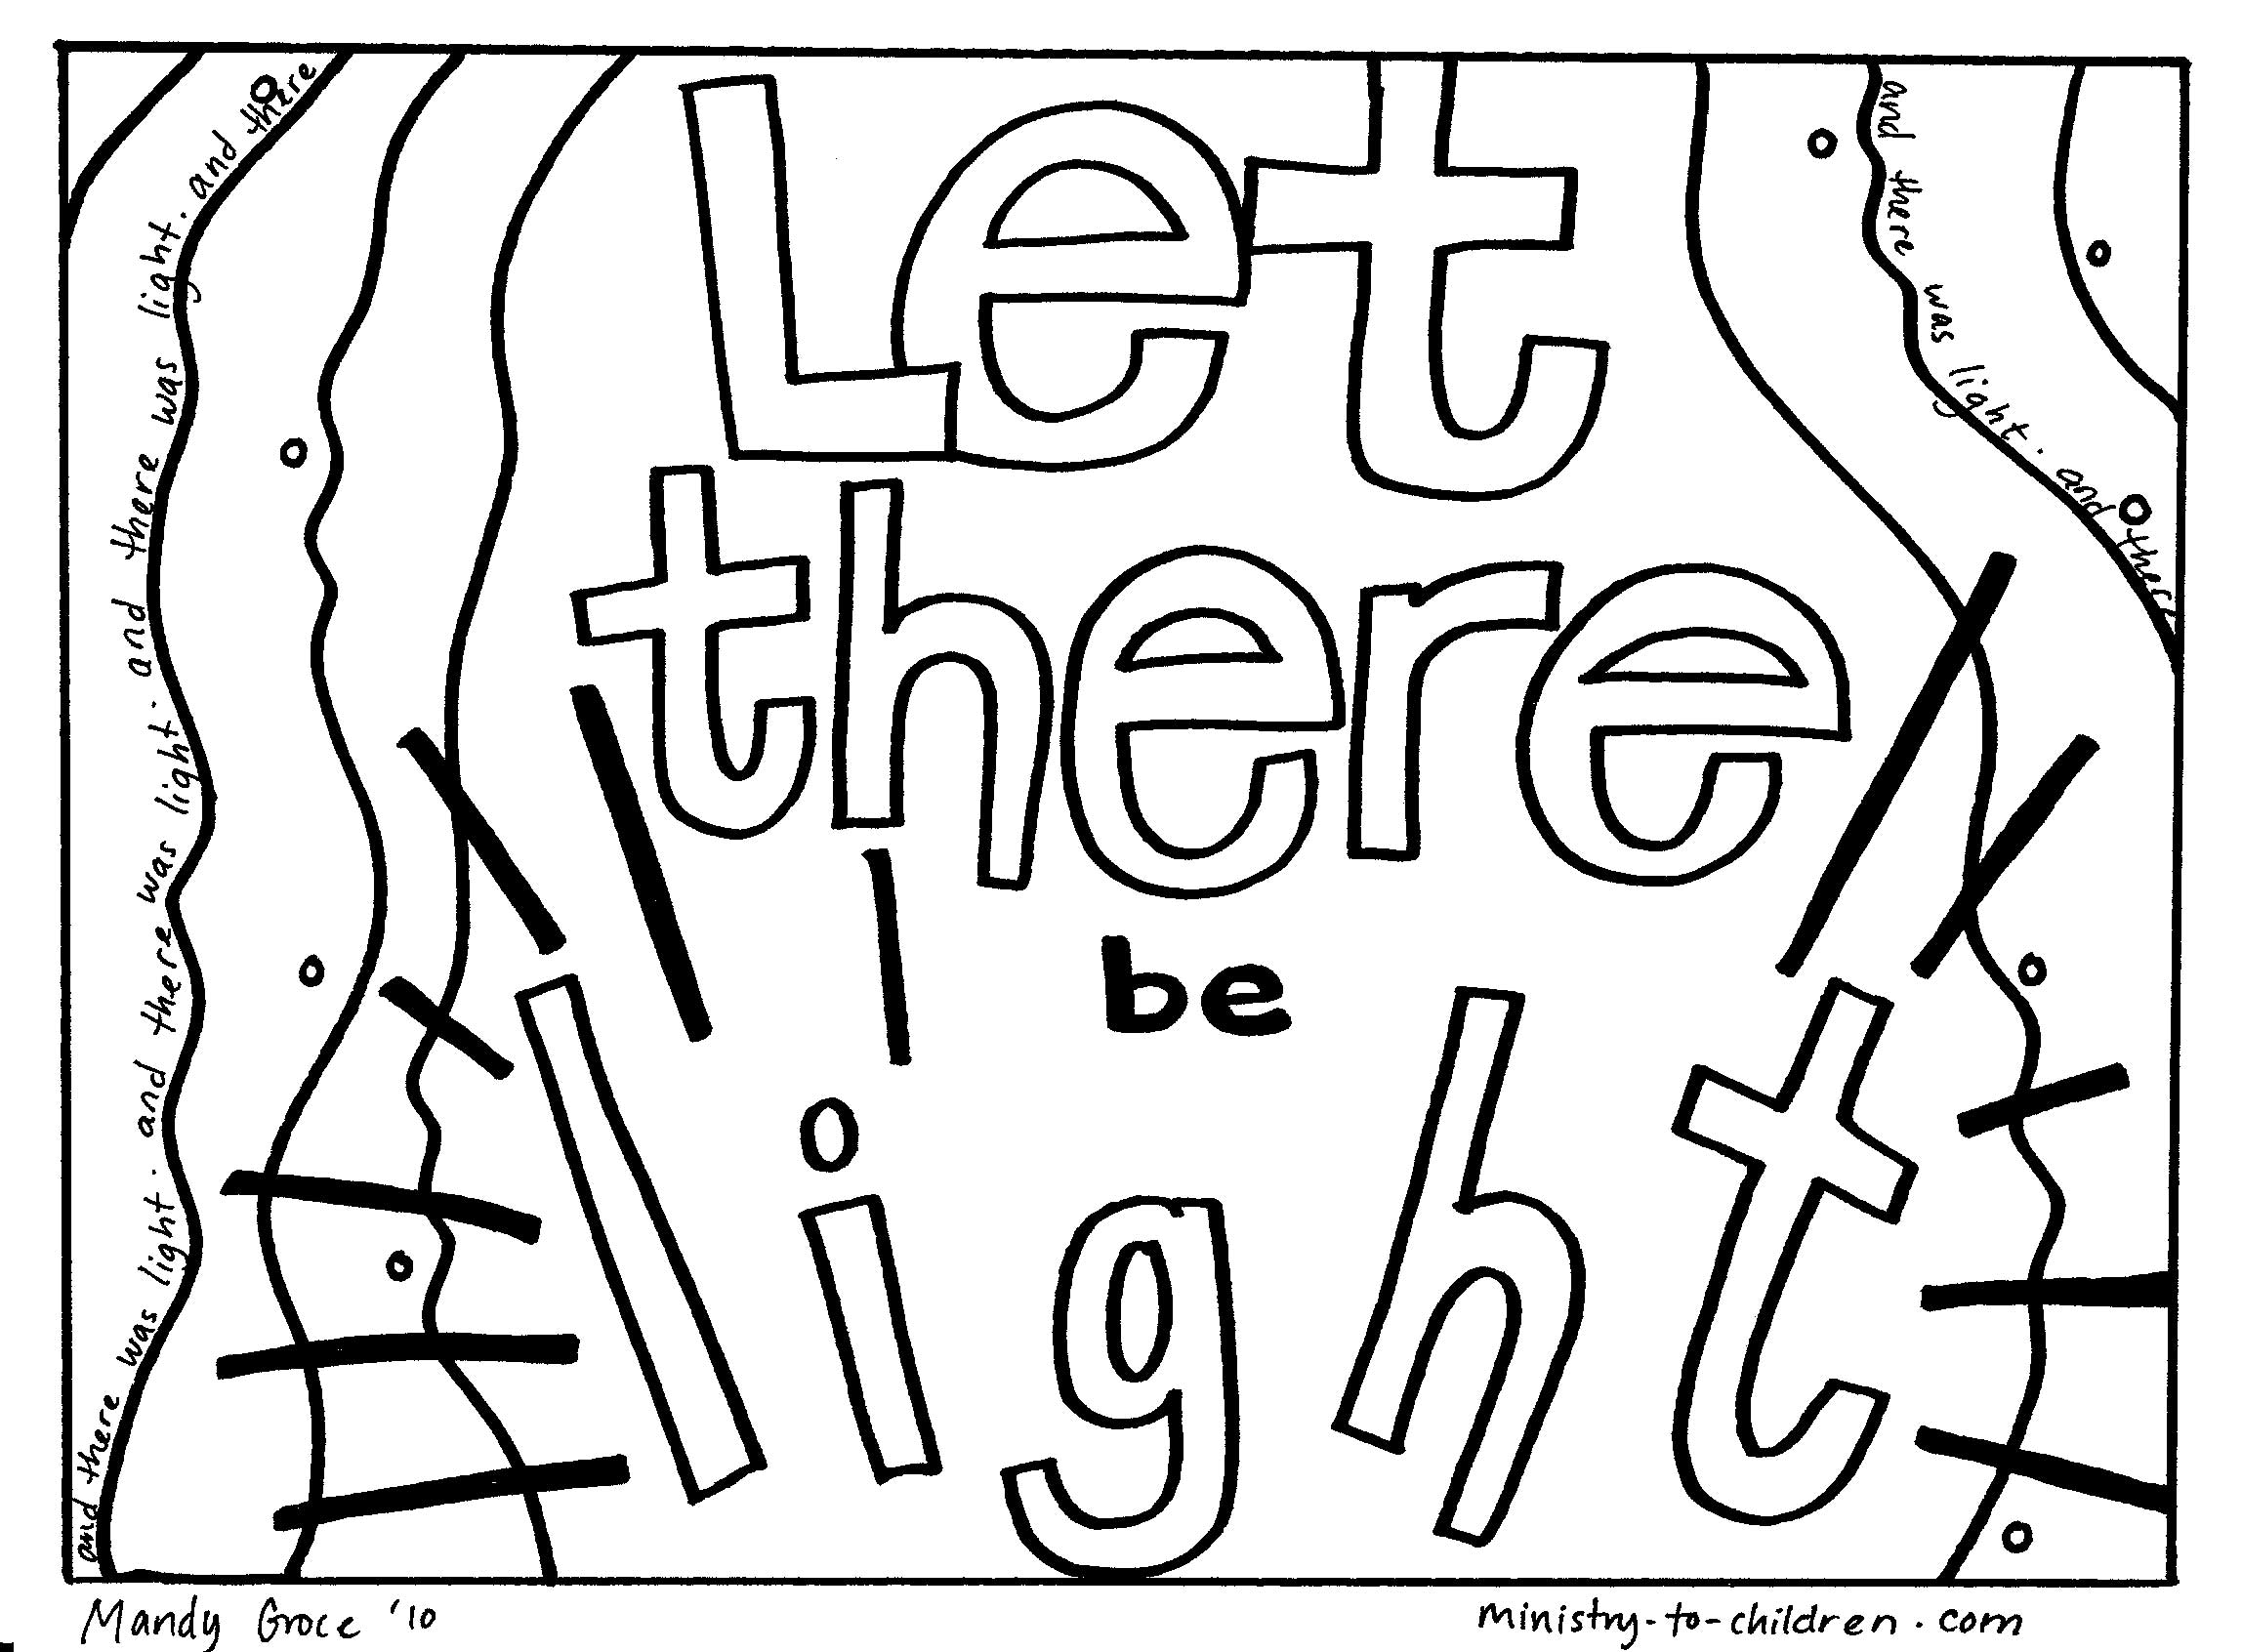 Free God Created The Earth Coloring Pages, Download Free Clip Art ... | 1692x2296